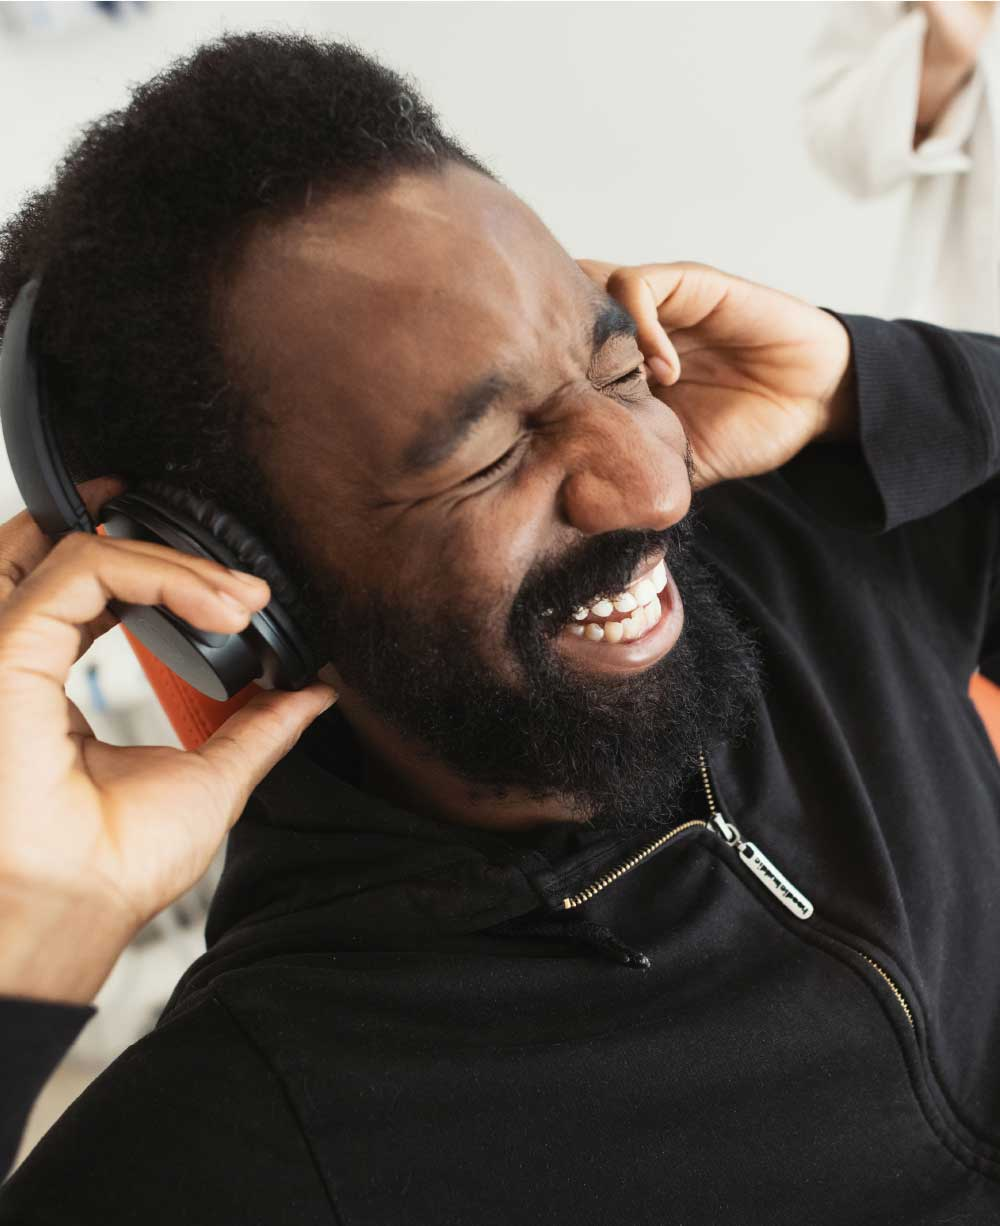 Photo of a man smiling with headphones on